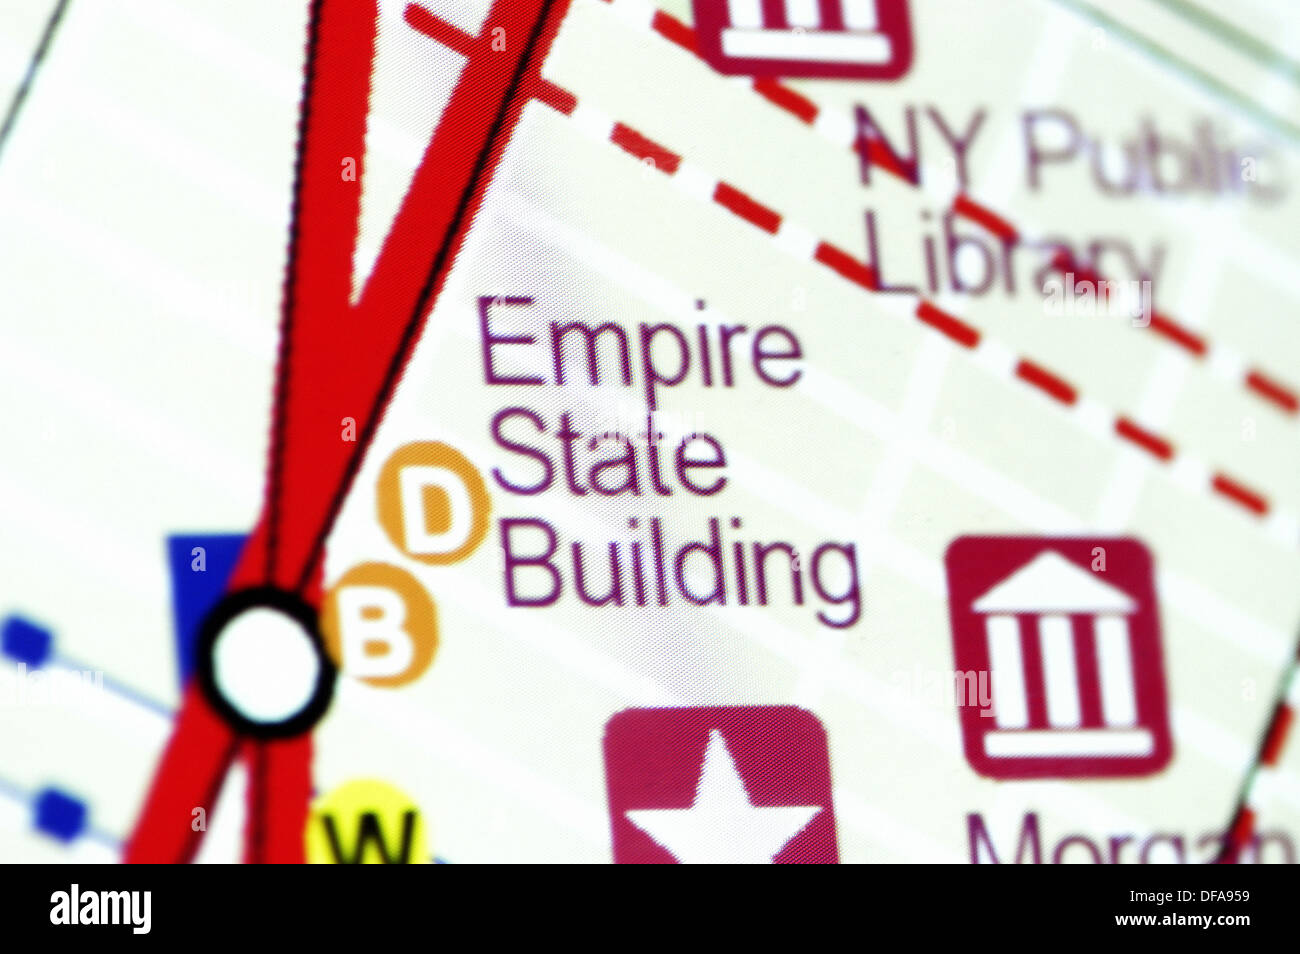 Detail of map: Empire State Building, Manhattan. New York ... on grand central map, mount rushmore map, rockefeller center map, new york map, times square map, new wtc map, nyc shooting map, ground zero map, building 7 map, lincoln park chicago neighborhood map, twin towers memorial map, ny state road map, central park map, museums in nyc map, las vegas map, hotel pennsylvania map, jersey city medical center map, nyc beaches map, freedom tower map, green lakes state park trail map,